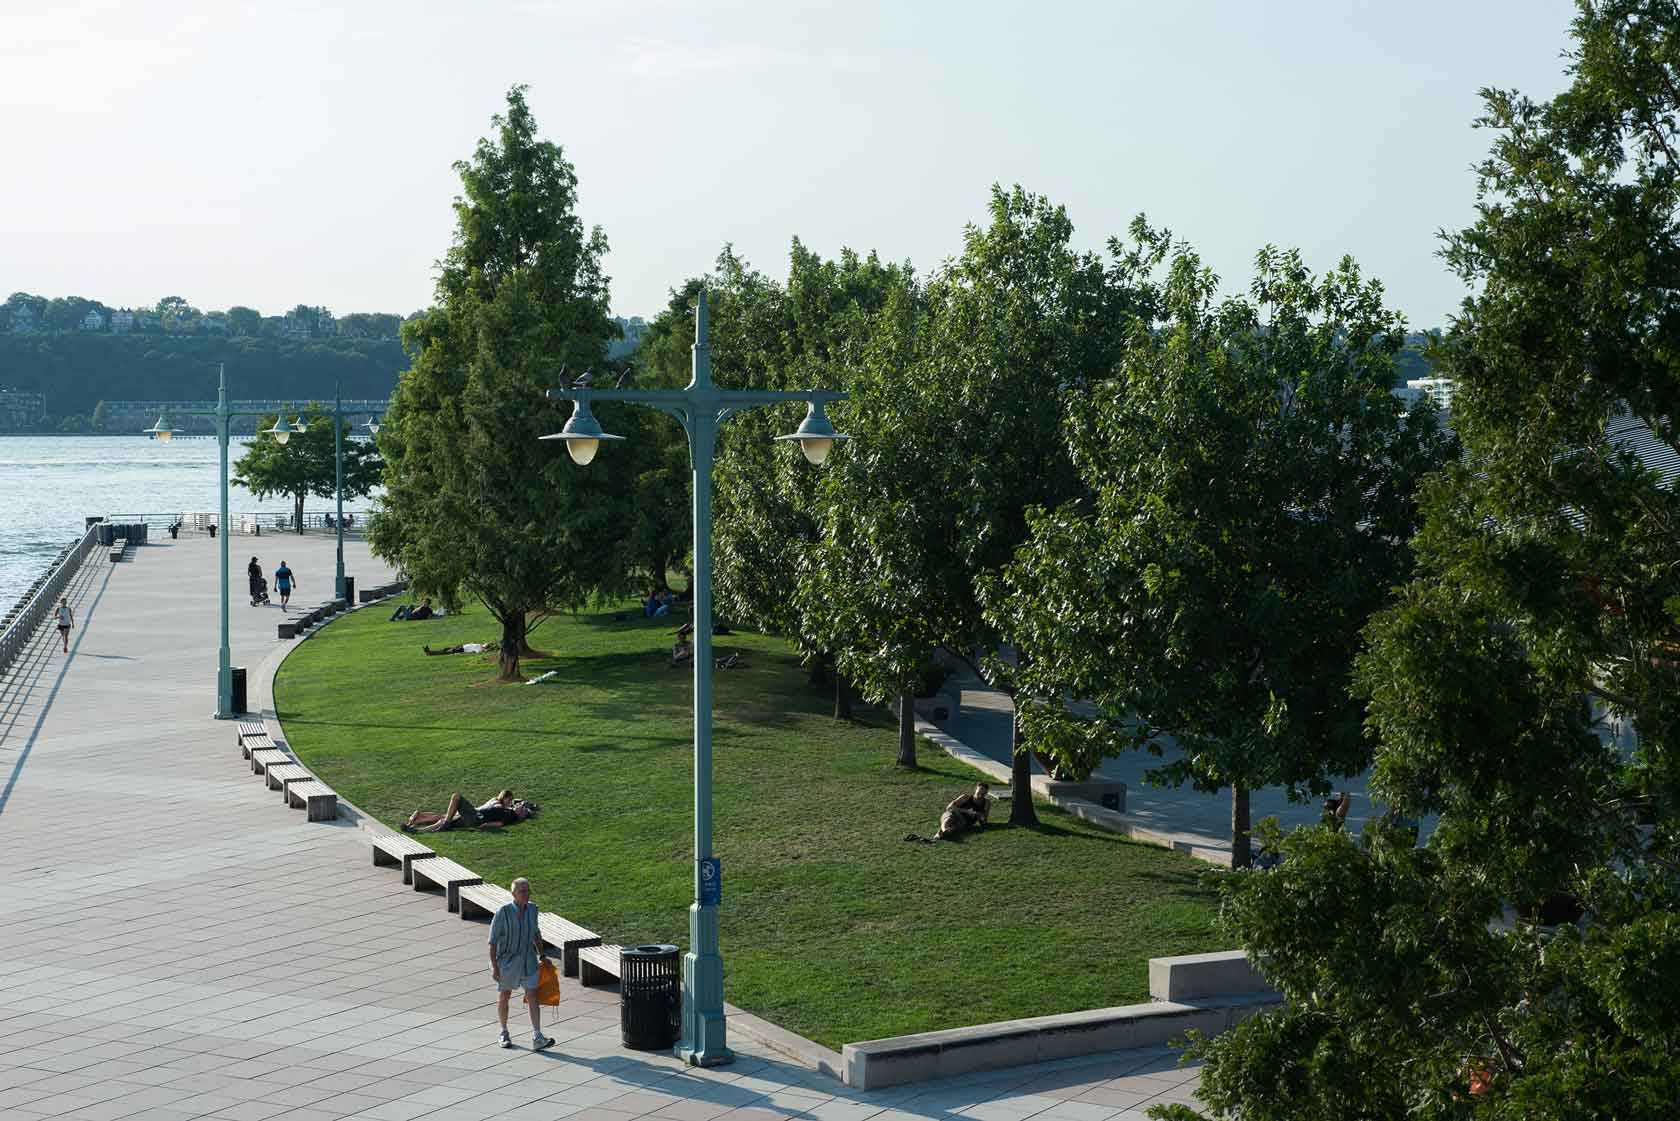 The Pier 84 lawn with Park visitors sunbathing